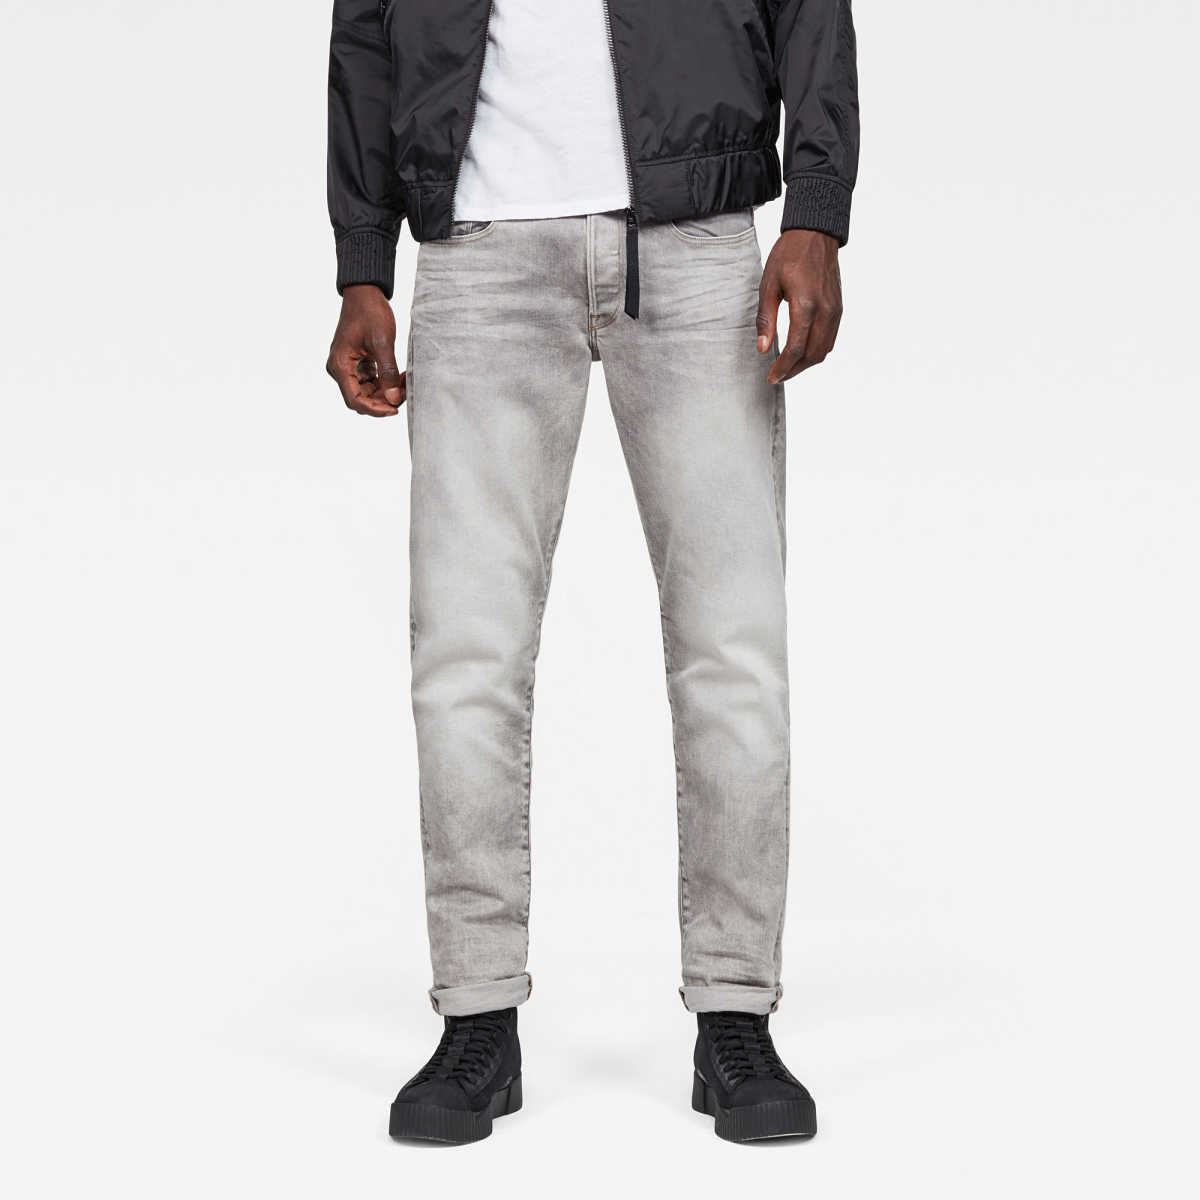 G-Star Male 3301 Straight Tapered Jeans Tapered Grey USA - GOOFASH - Mens JEANS